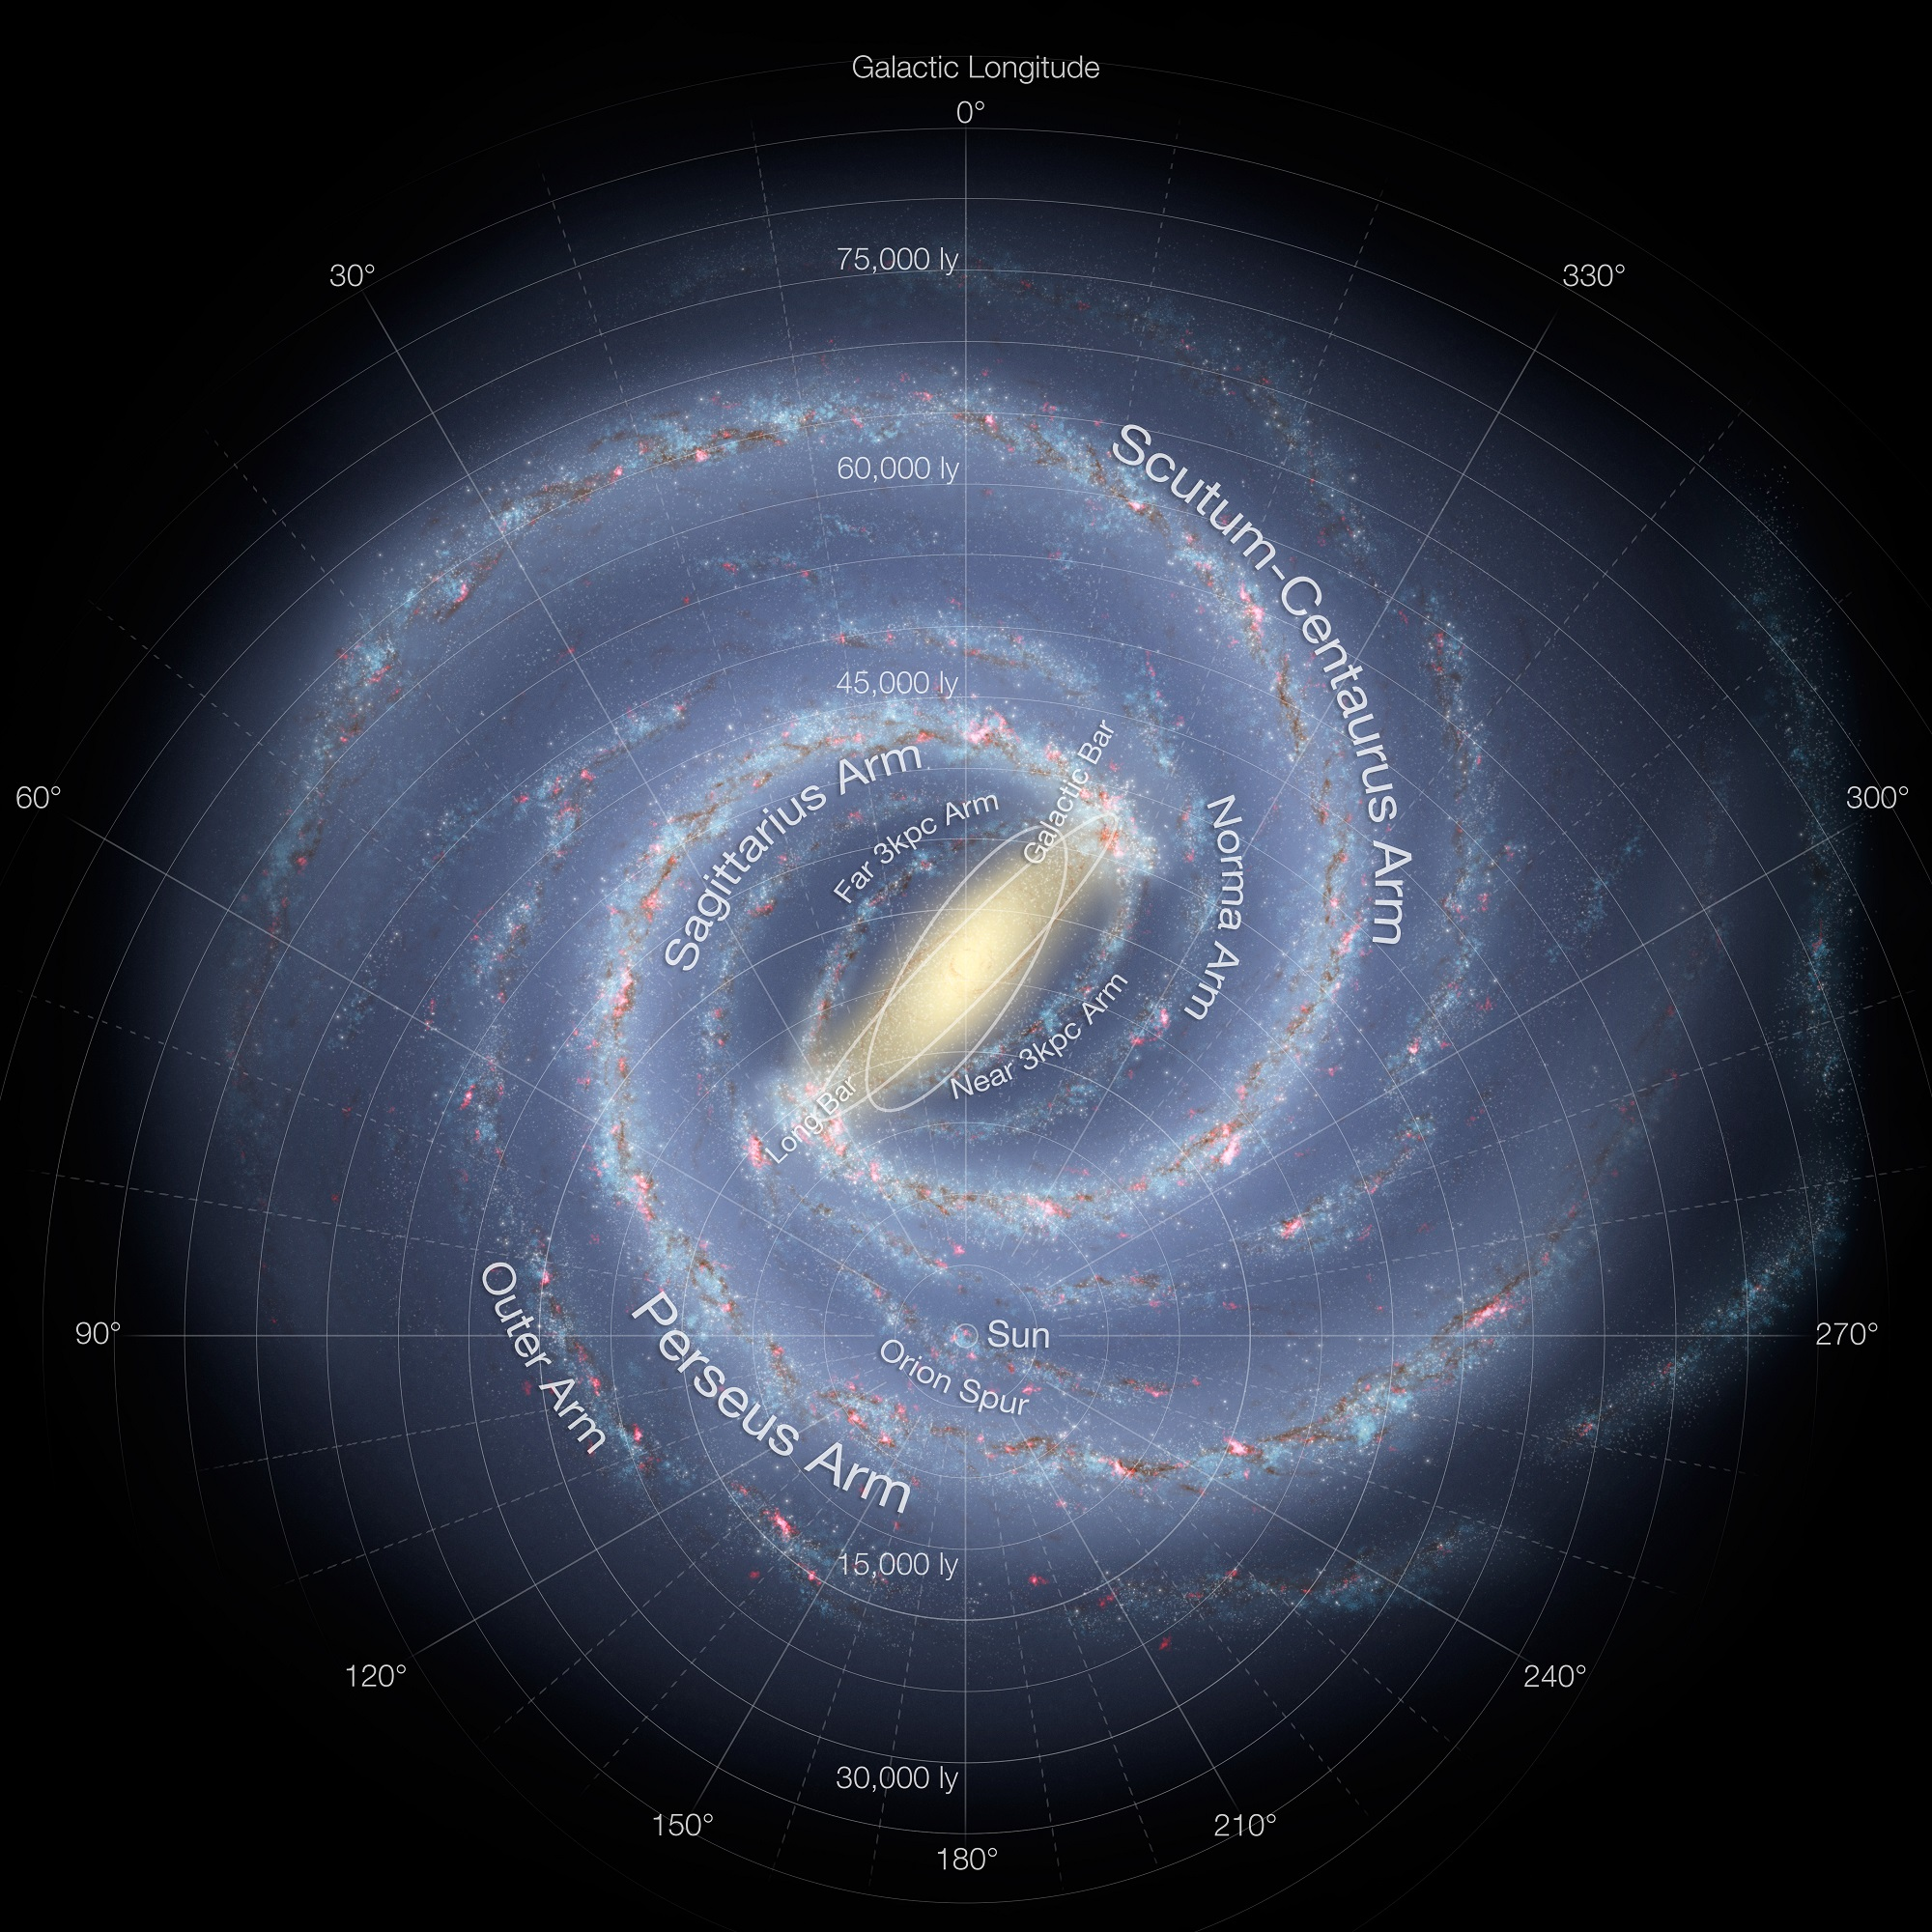 What Is the Name Of Our Galaxy? - Universe Today